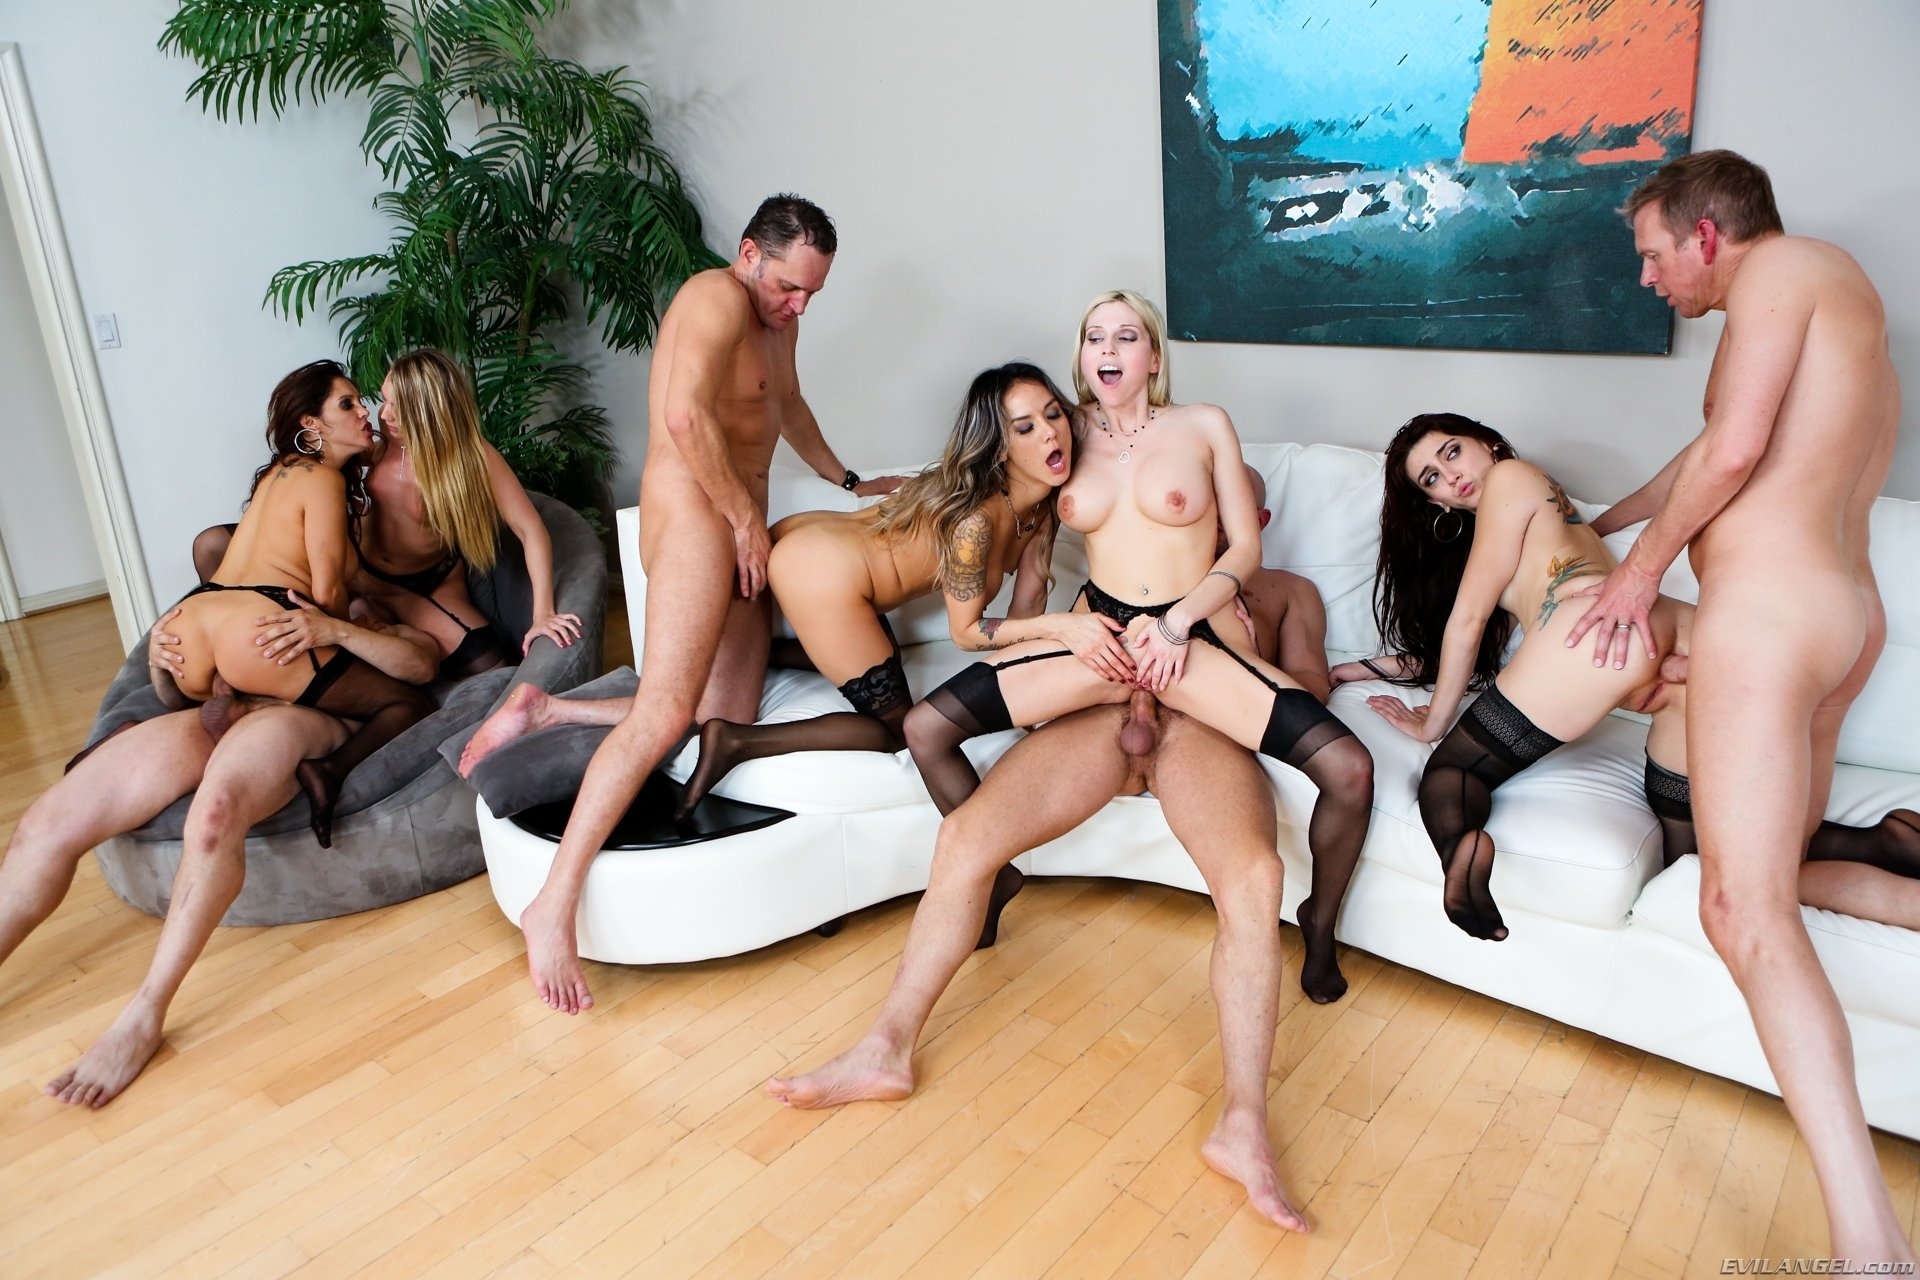 cfnm bondage handjob xxx group sex hd